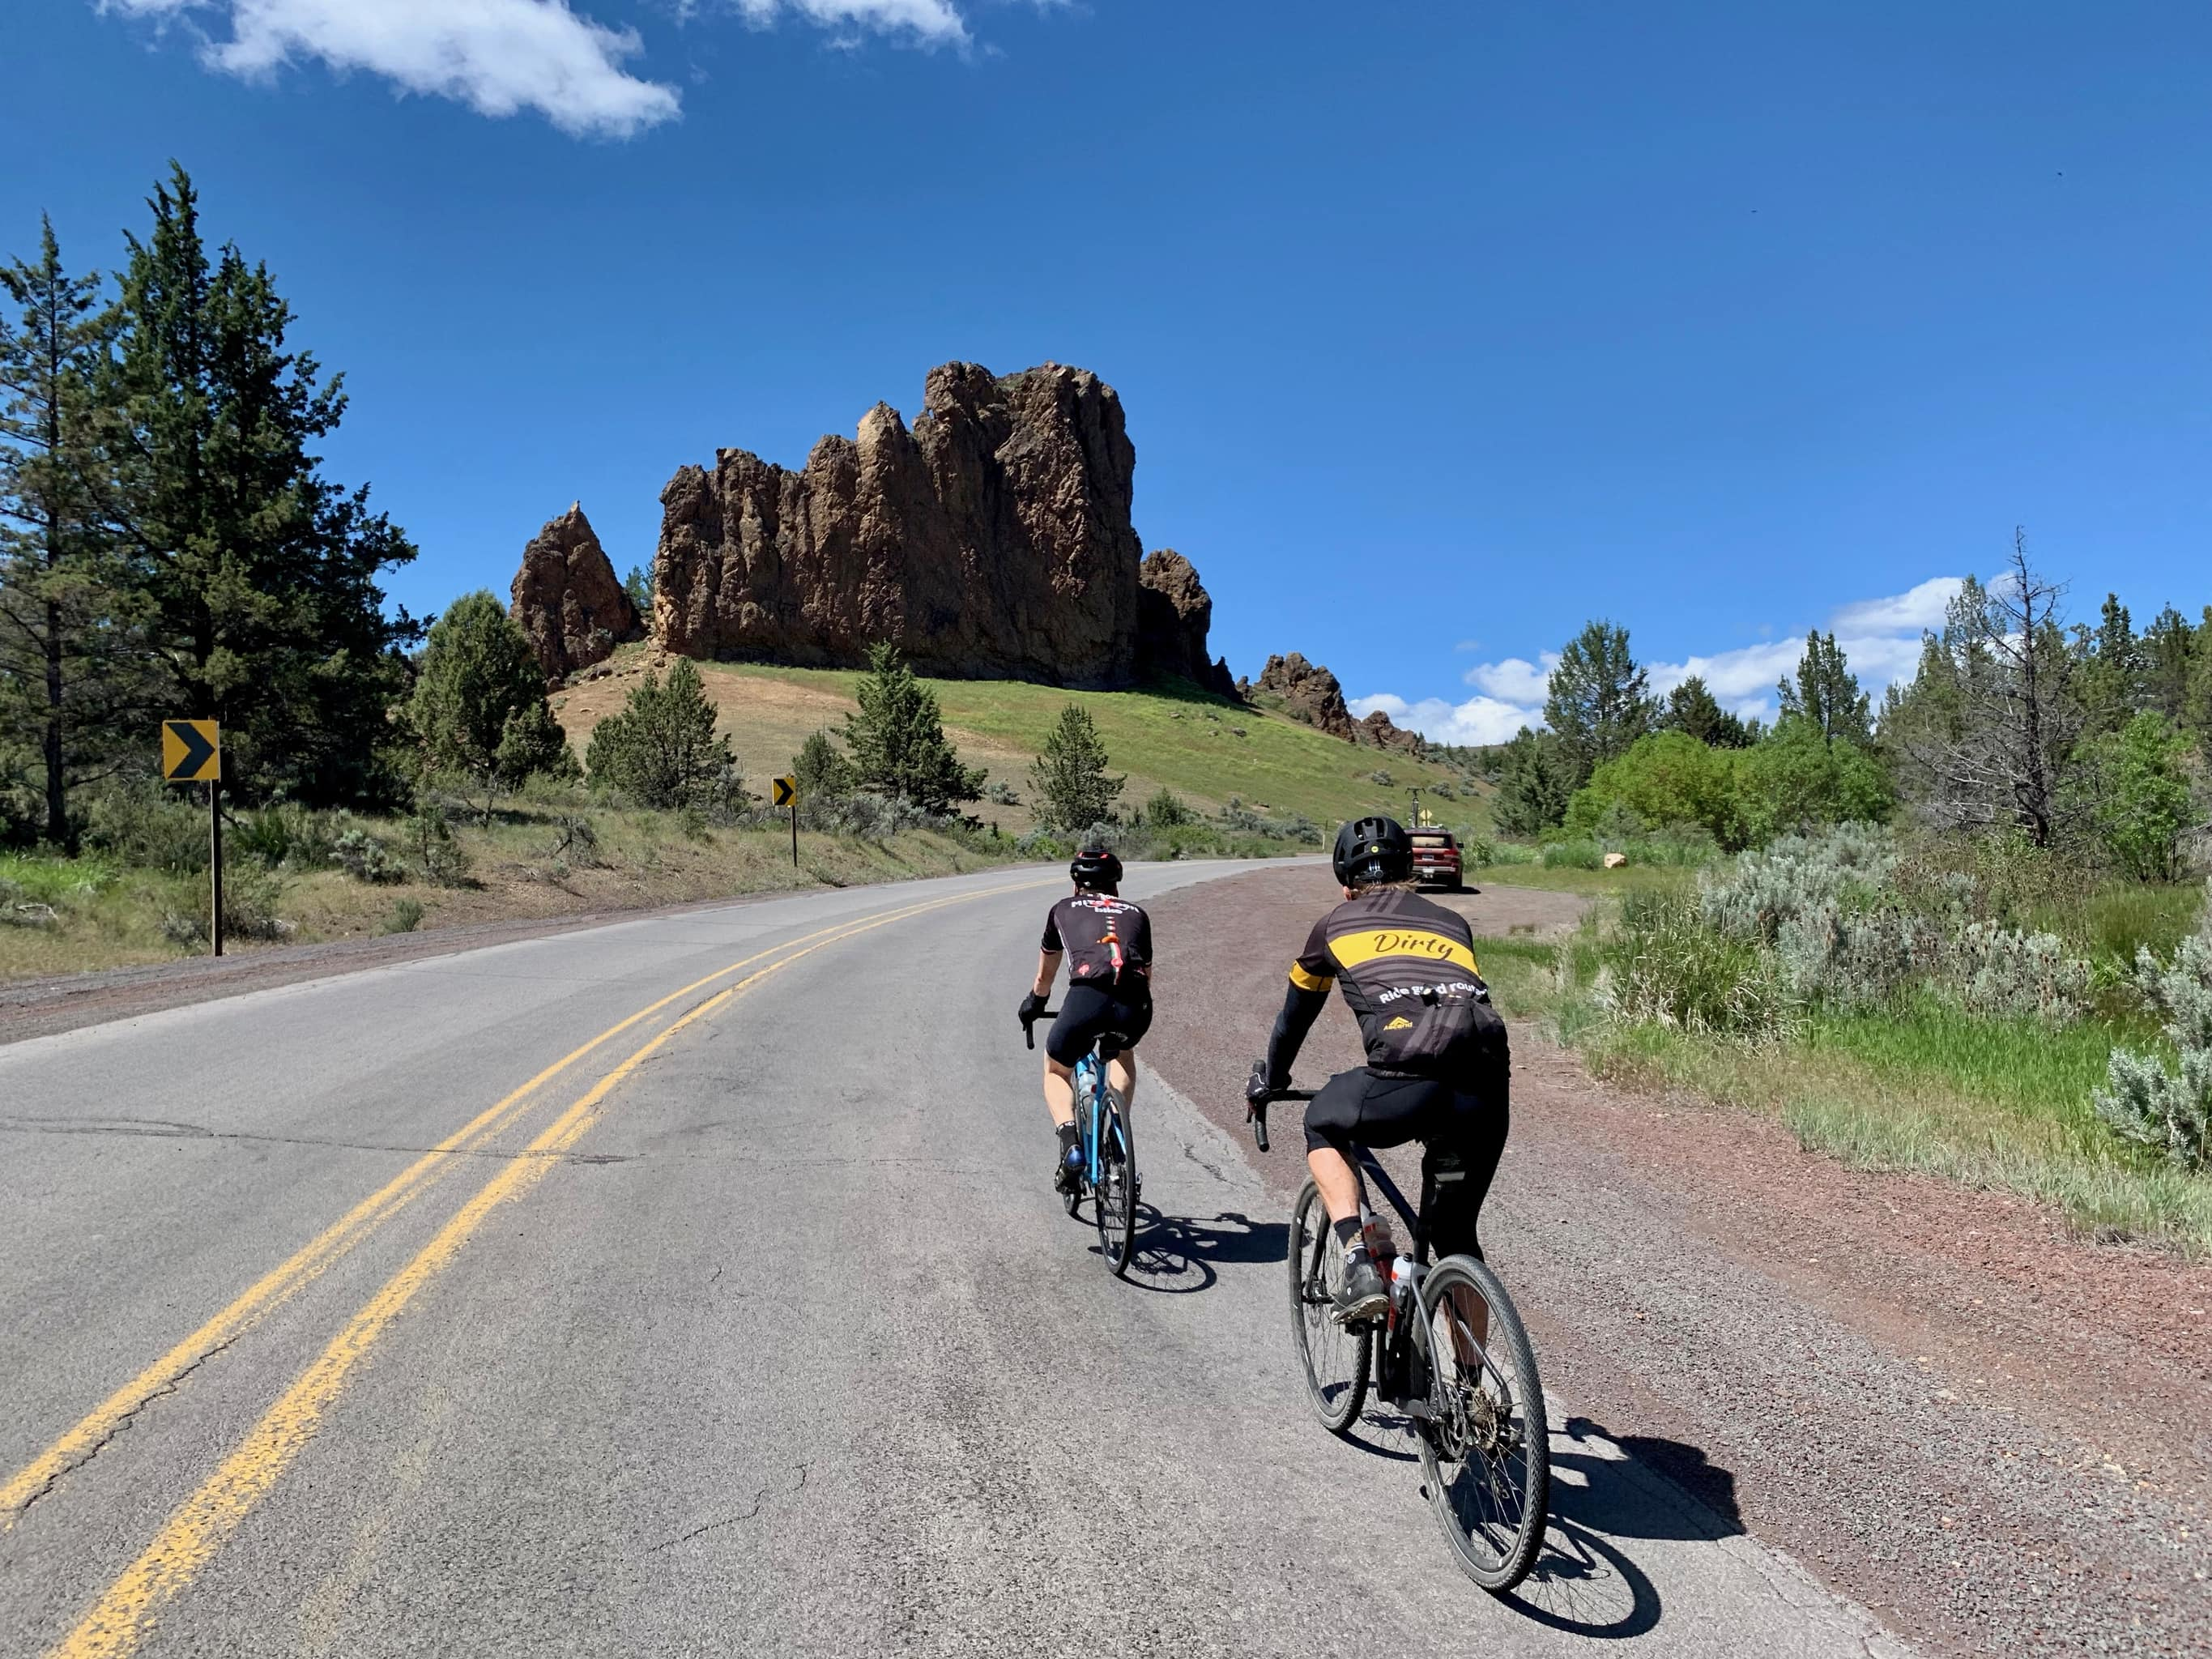 Cyclists on the SE Paulina Highway with rock monolith in the background.